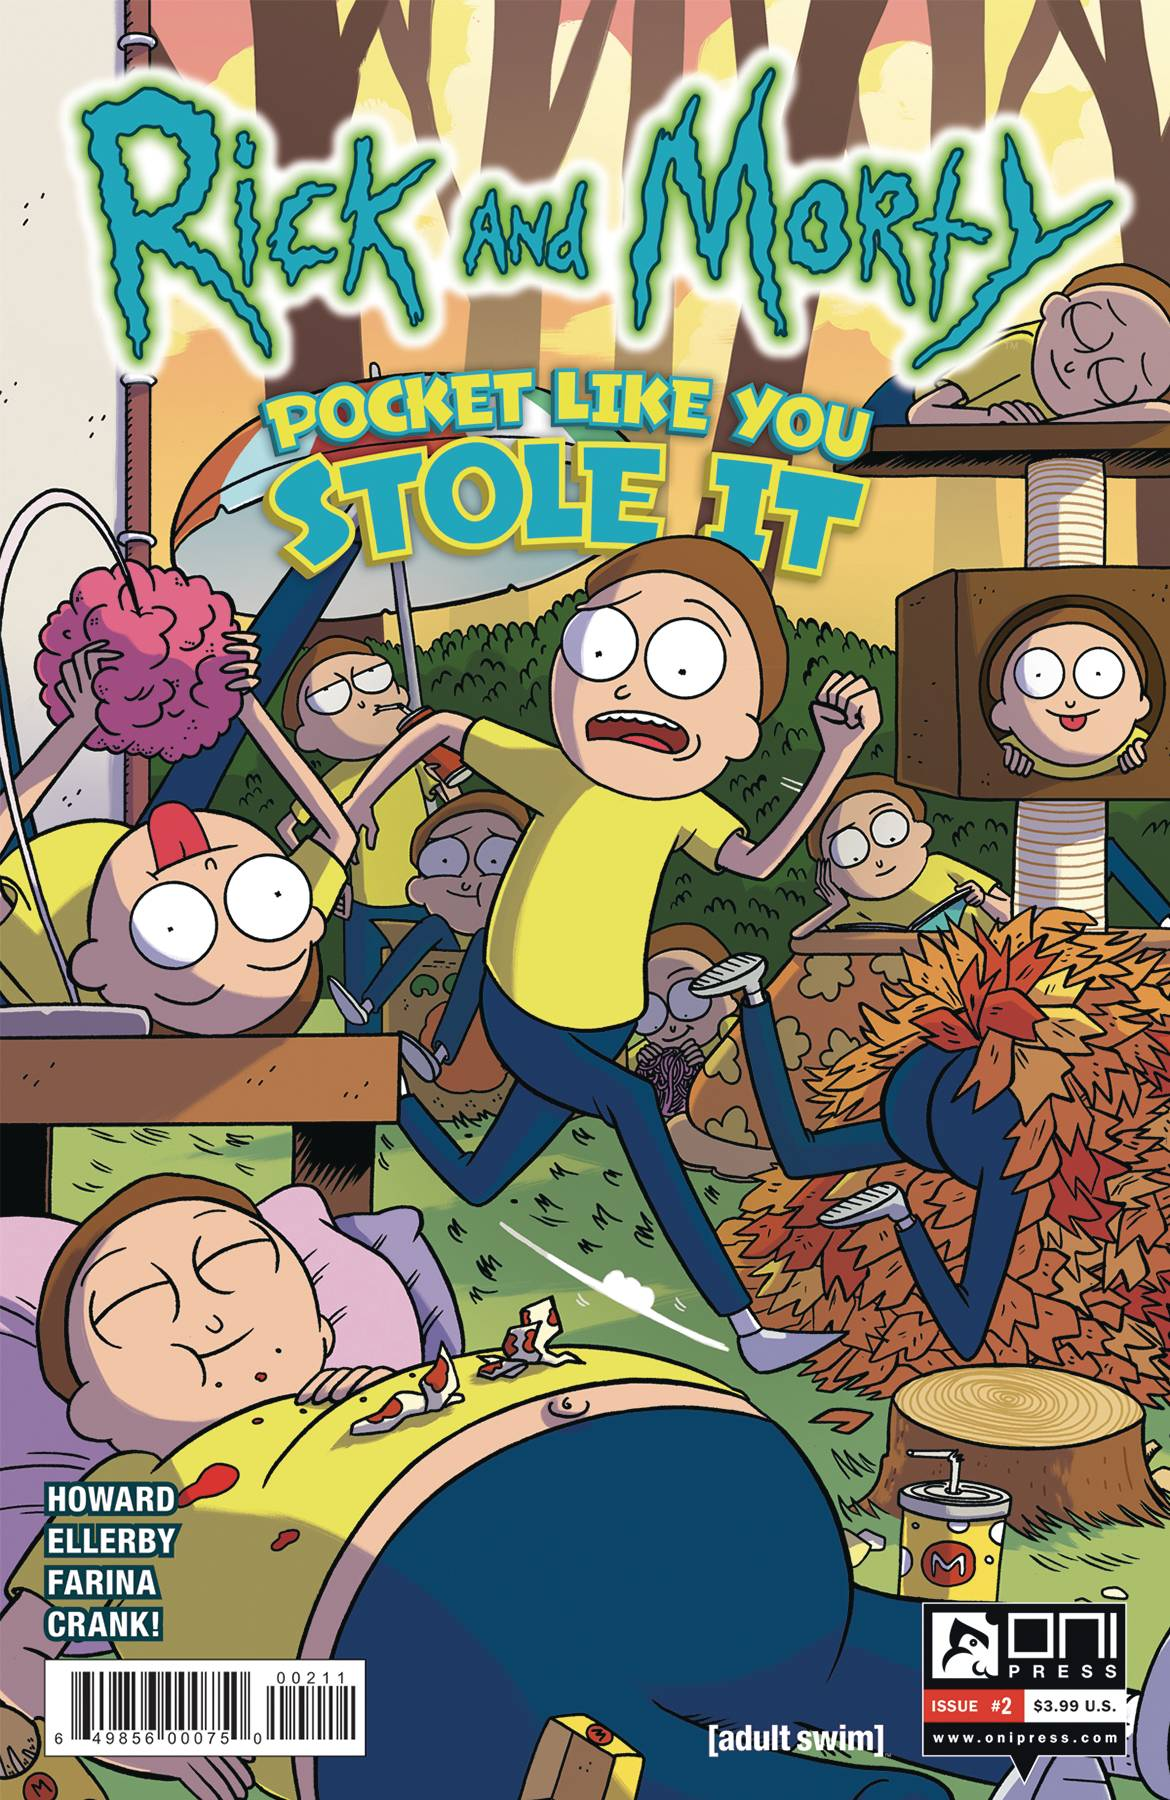 RICK AND MORTY: POCKET LIKE YOU STOLE IT#2